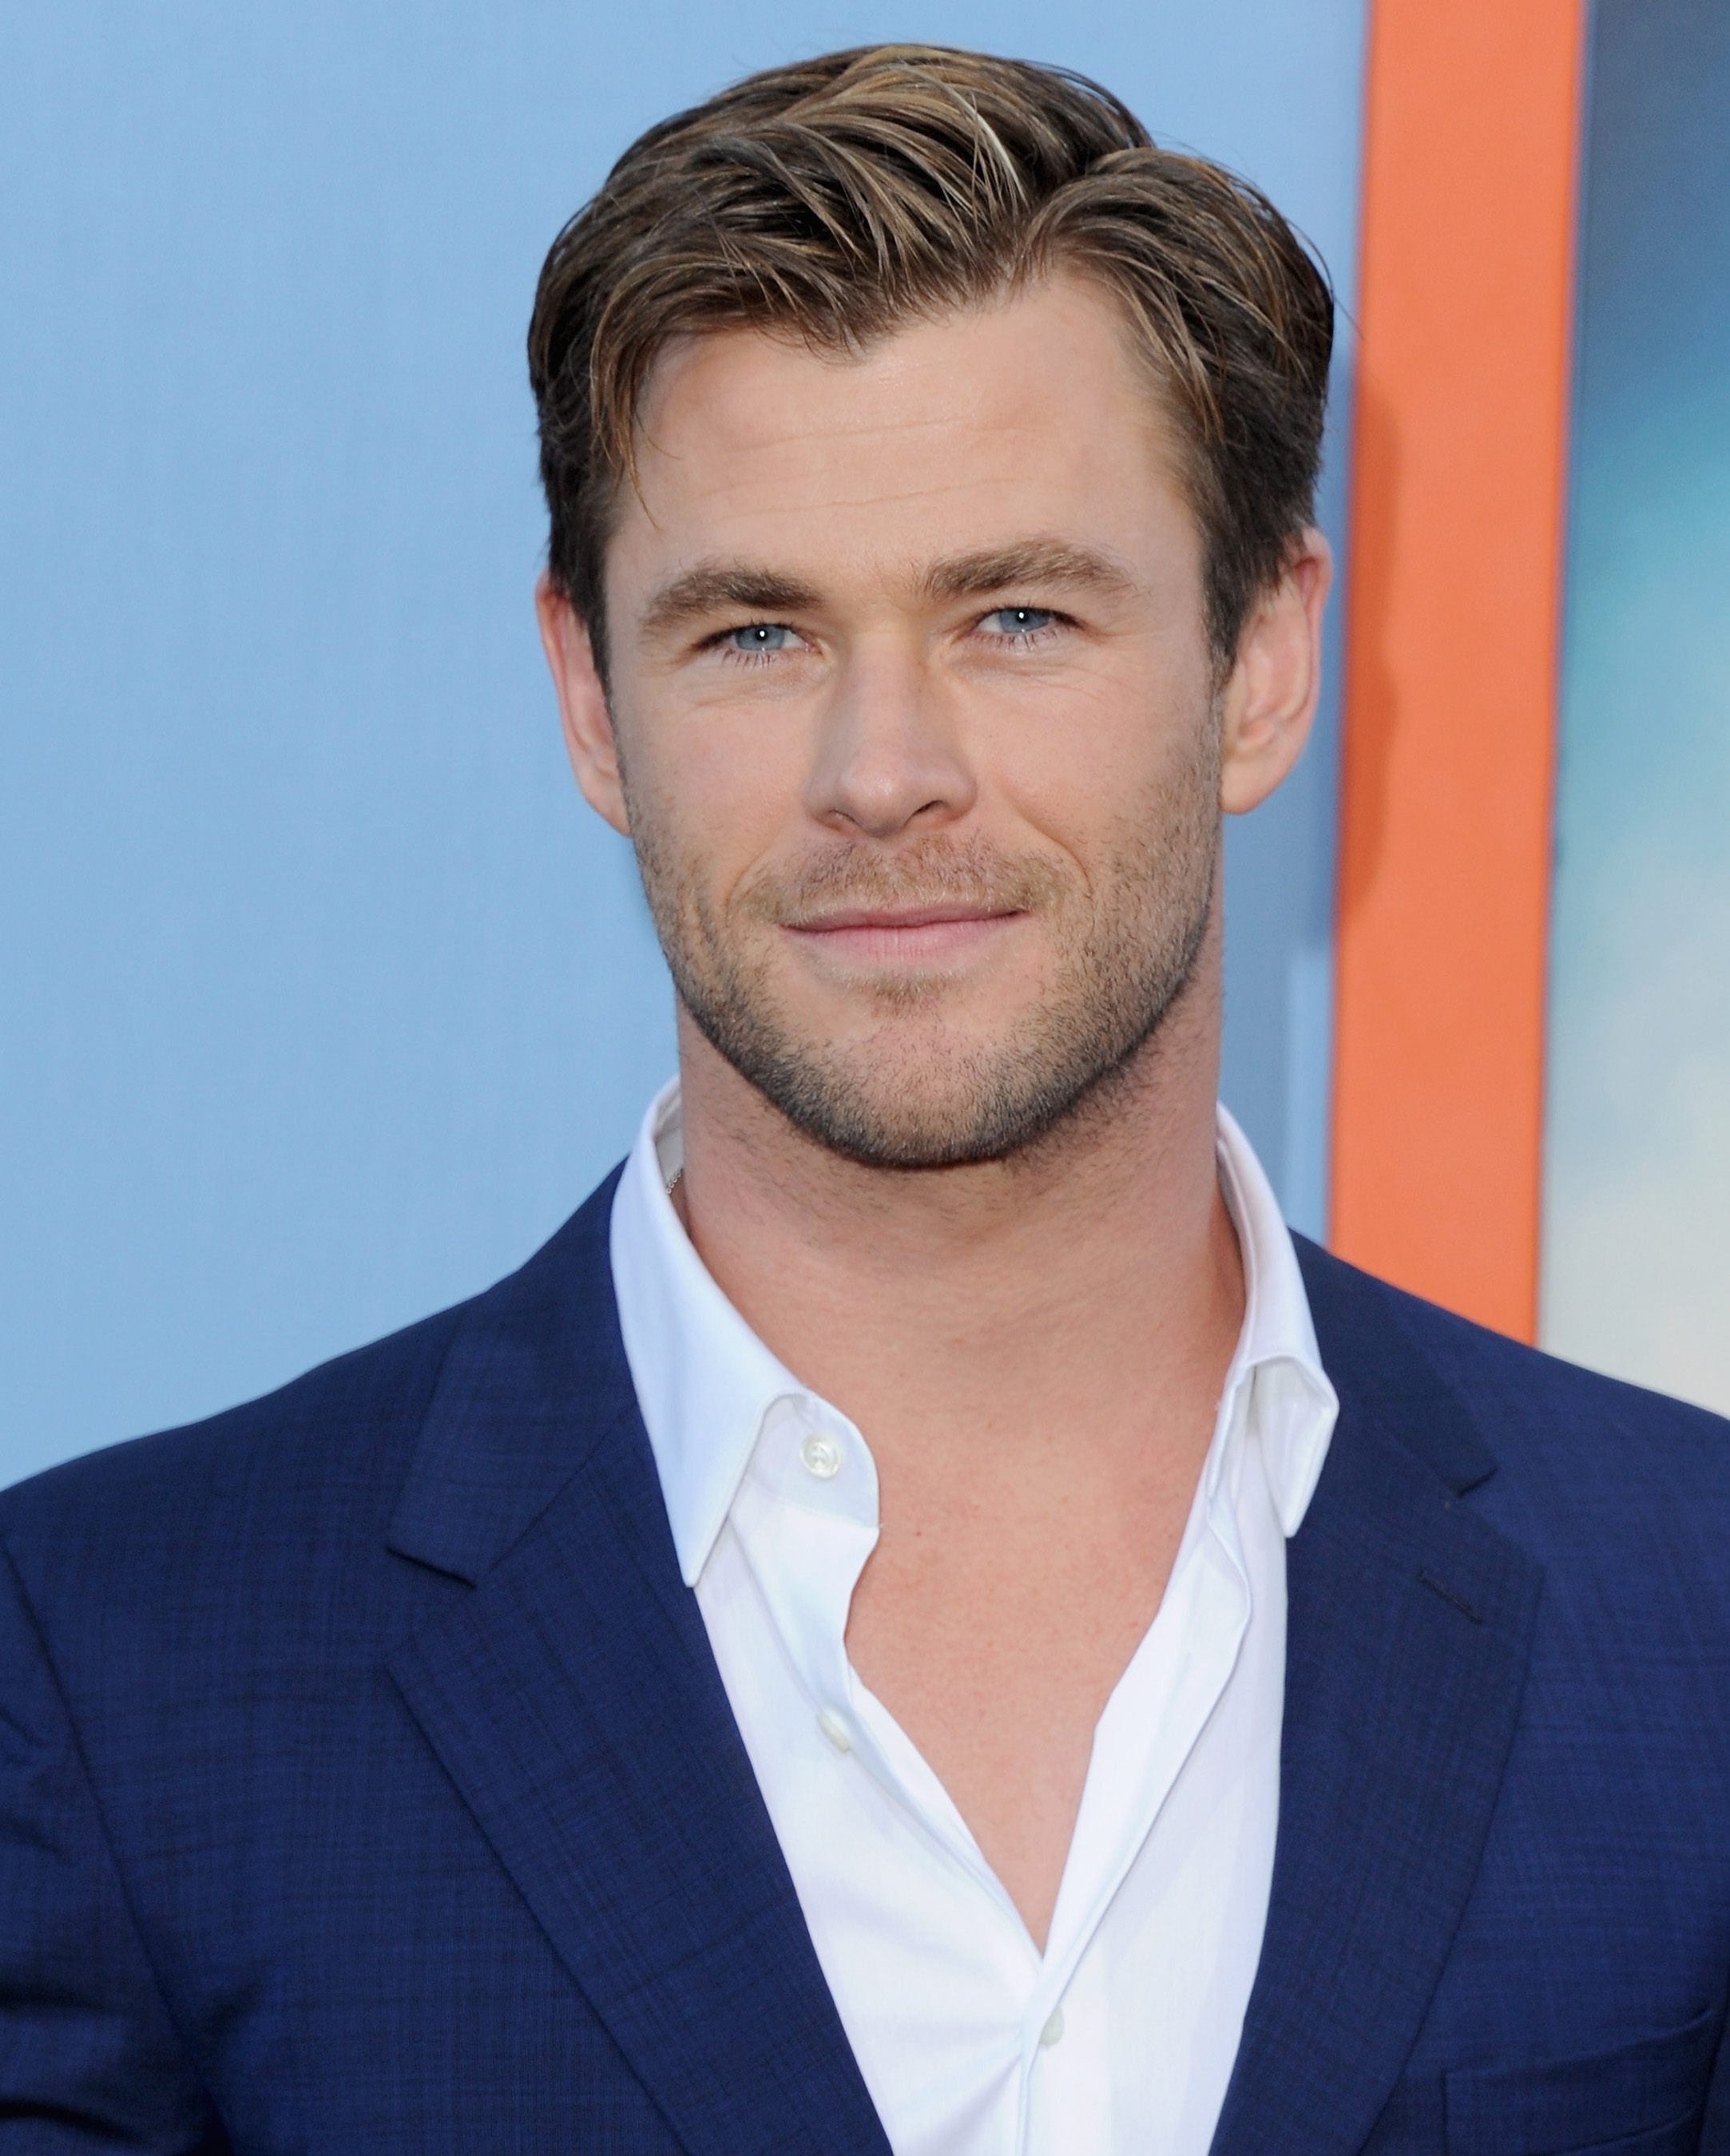 Australian actor and new Tourism Australia global ambassador Chris Hemsworth